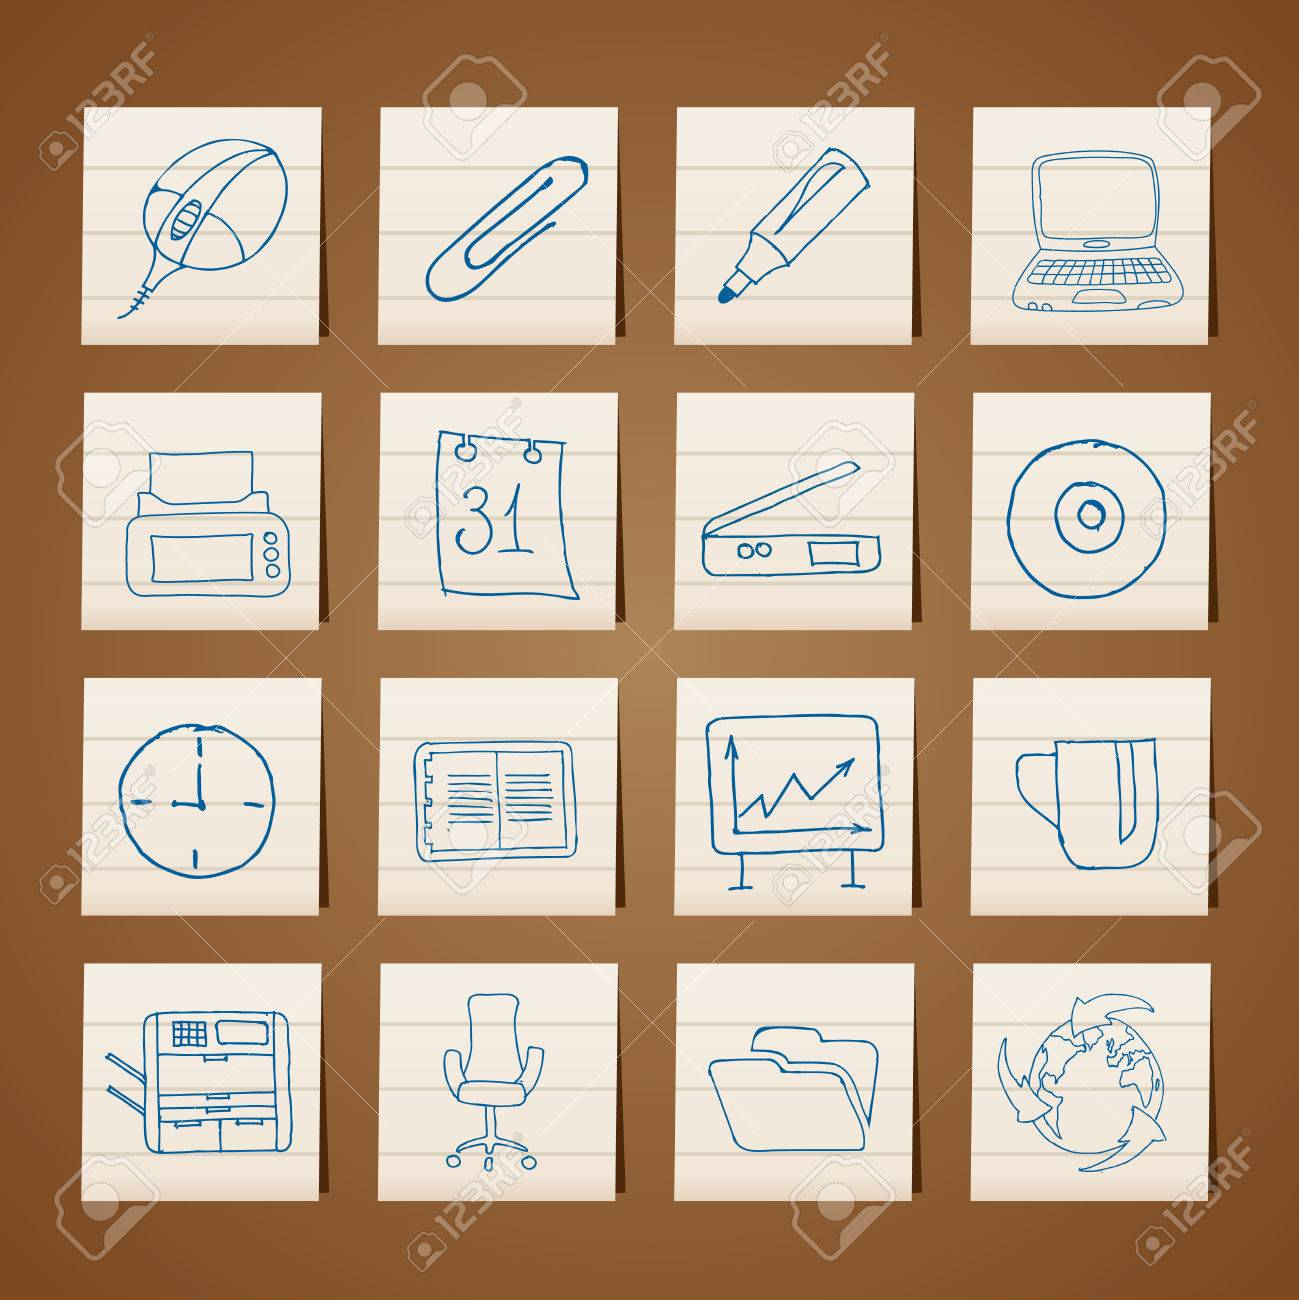 Office tools icons -  vector icon set Stock Vector - 6296238